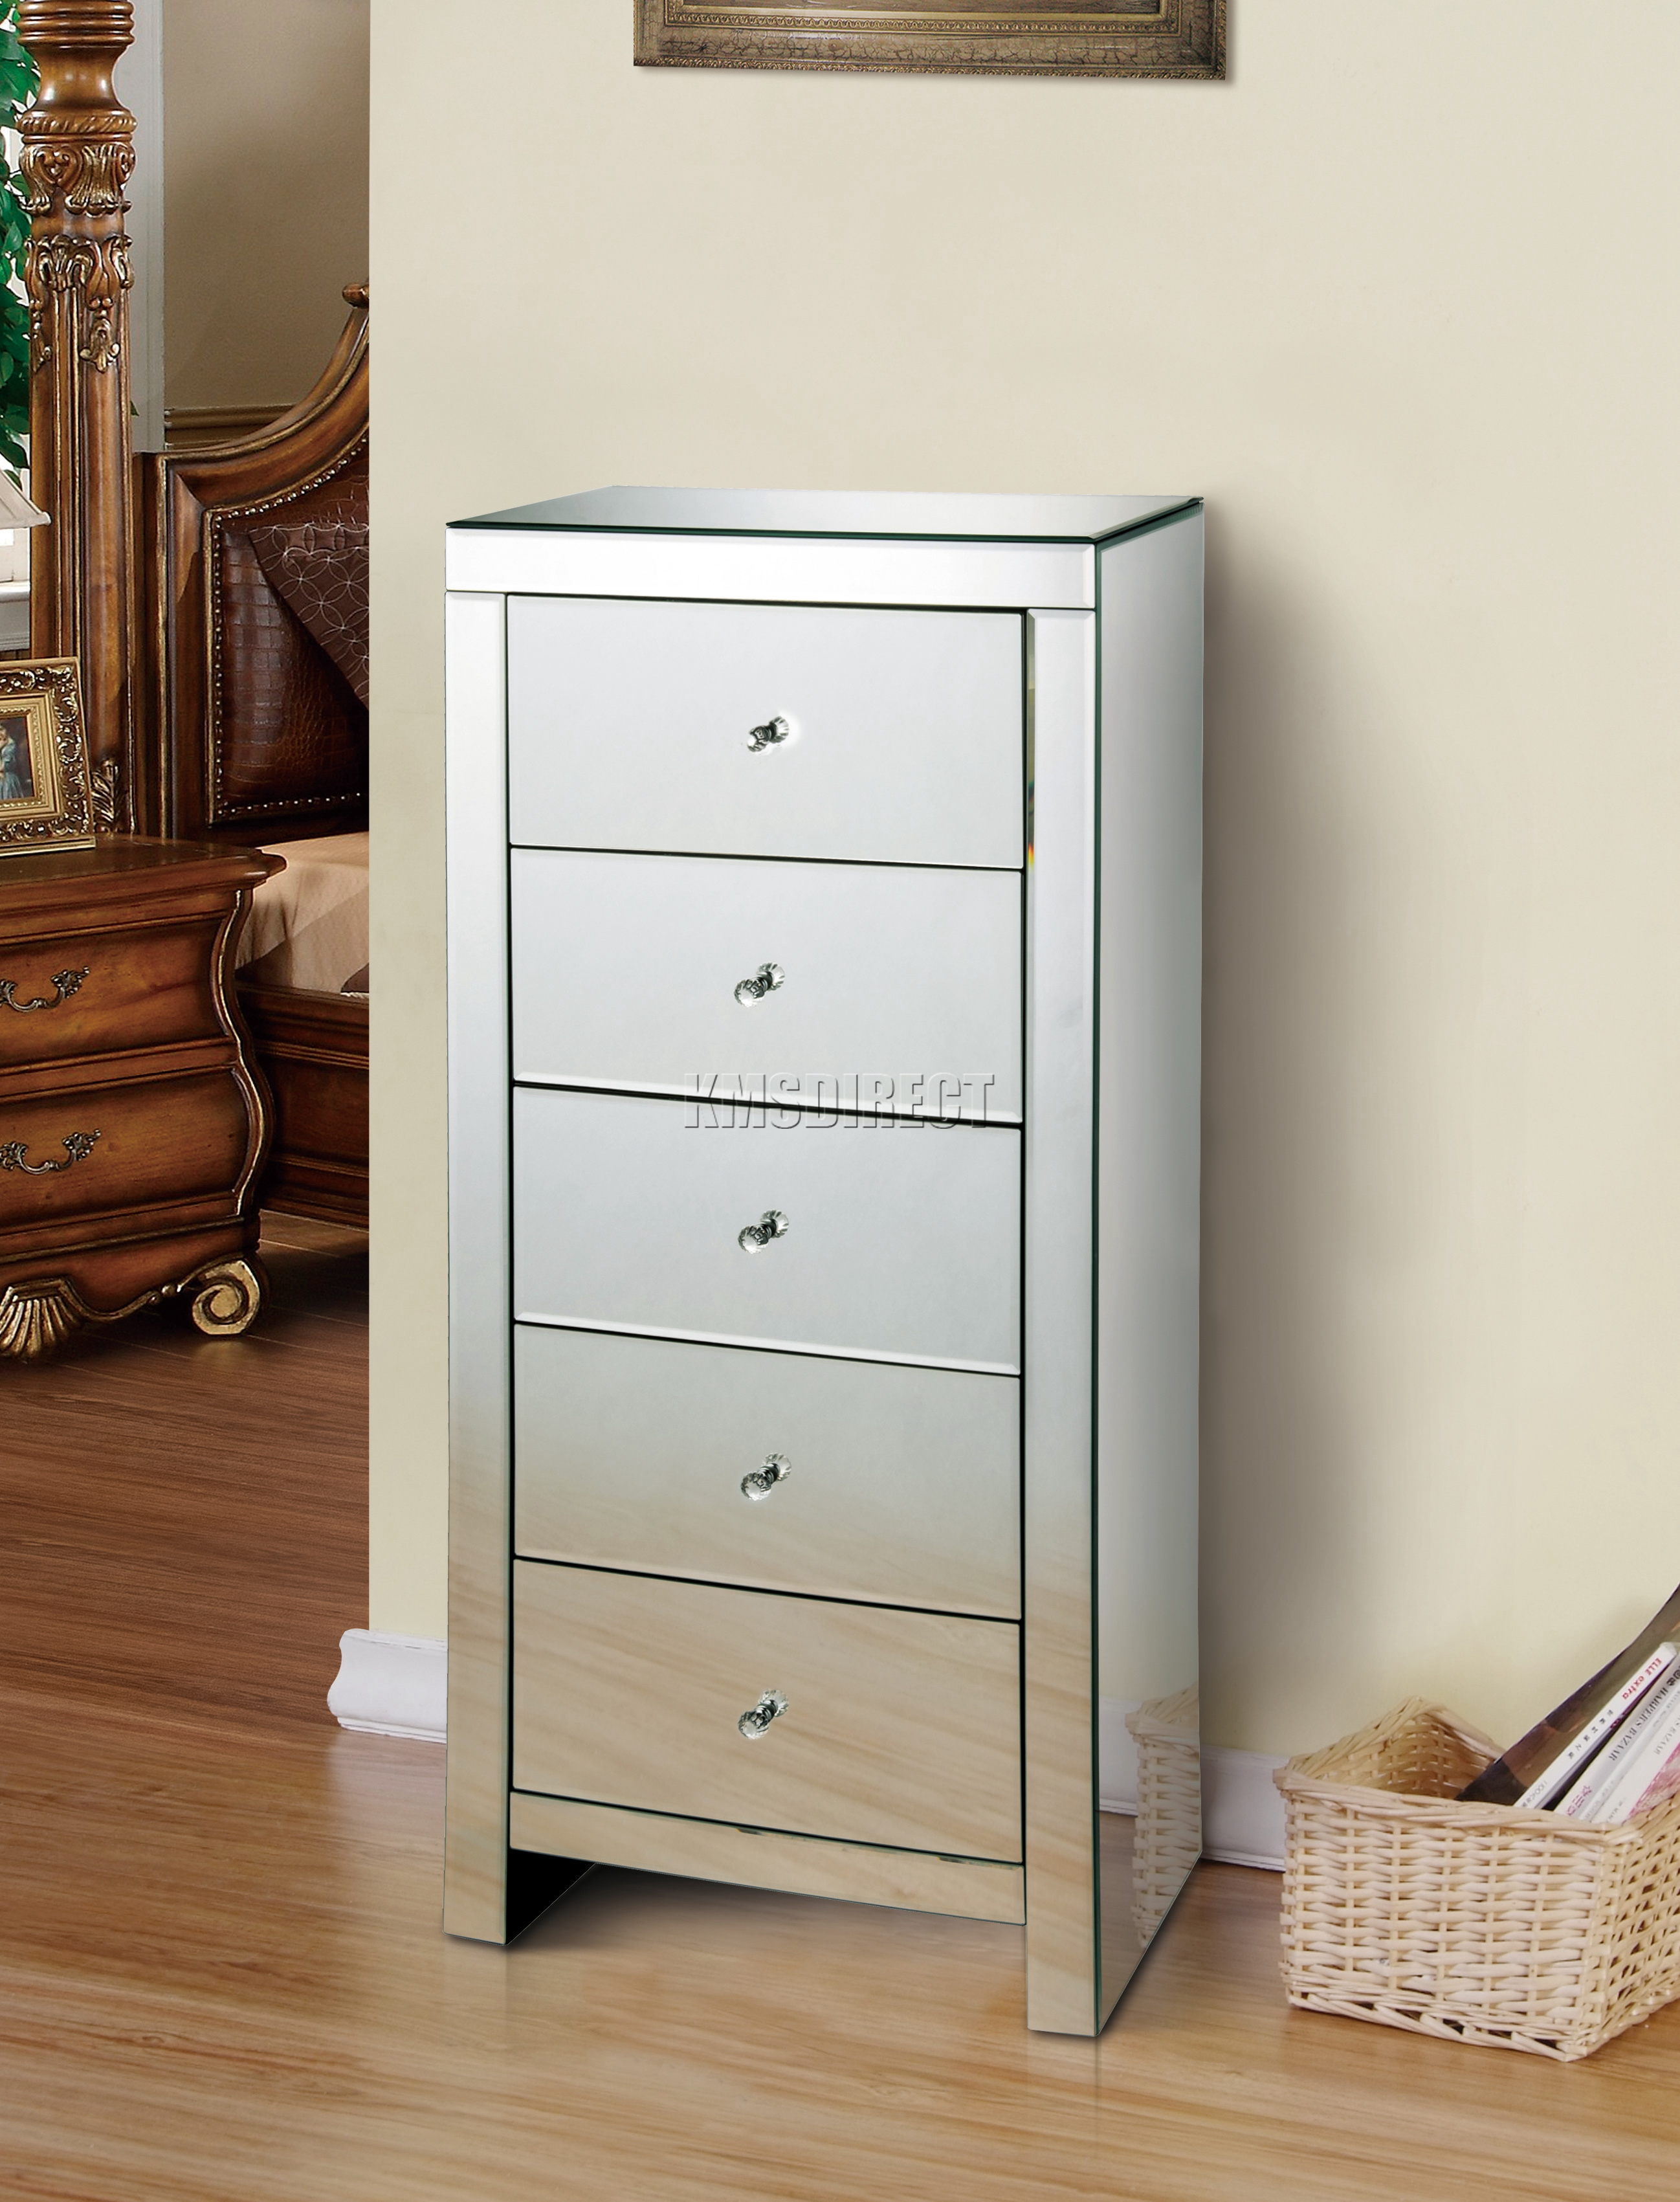 dresser null f allen furniture us en allistair chests cheap bamboo di shop images bedroom chest faux dressers ethan